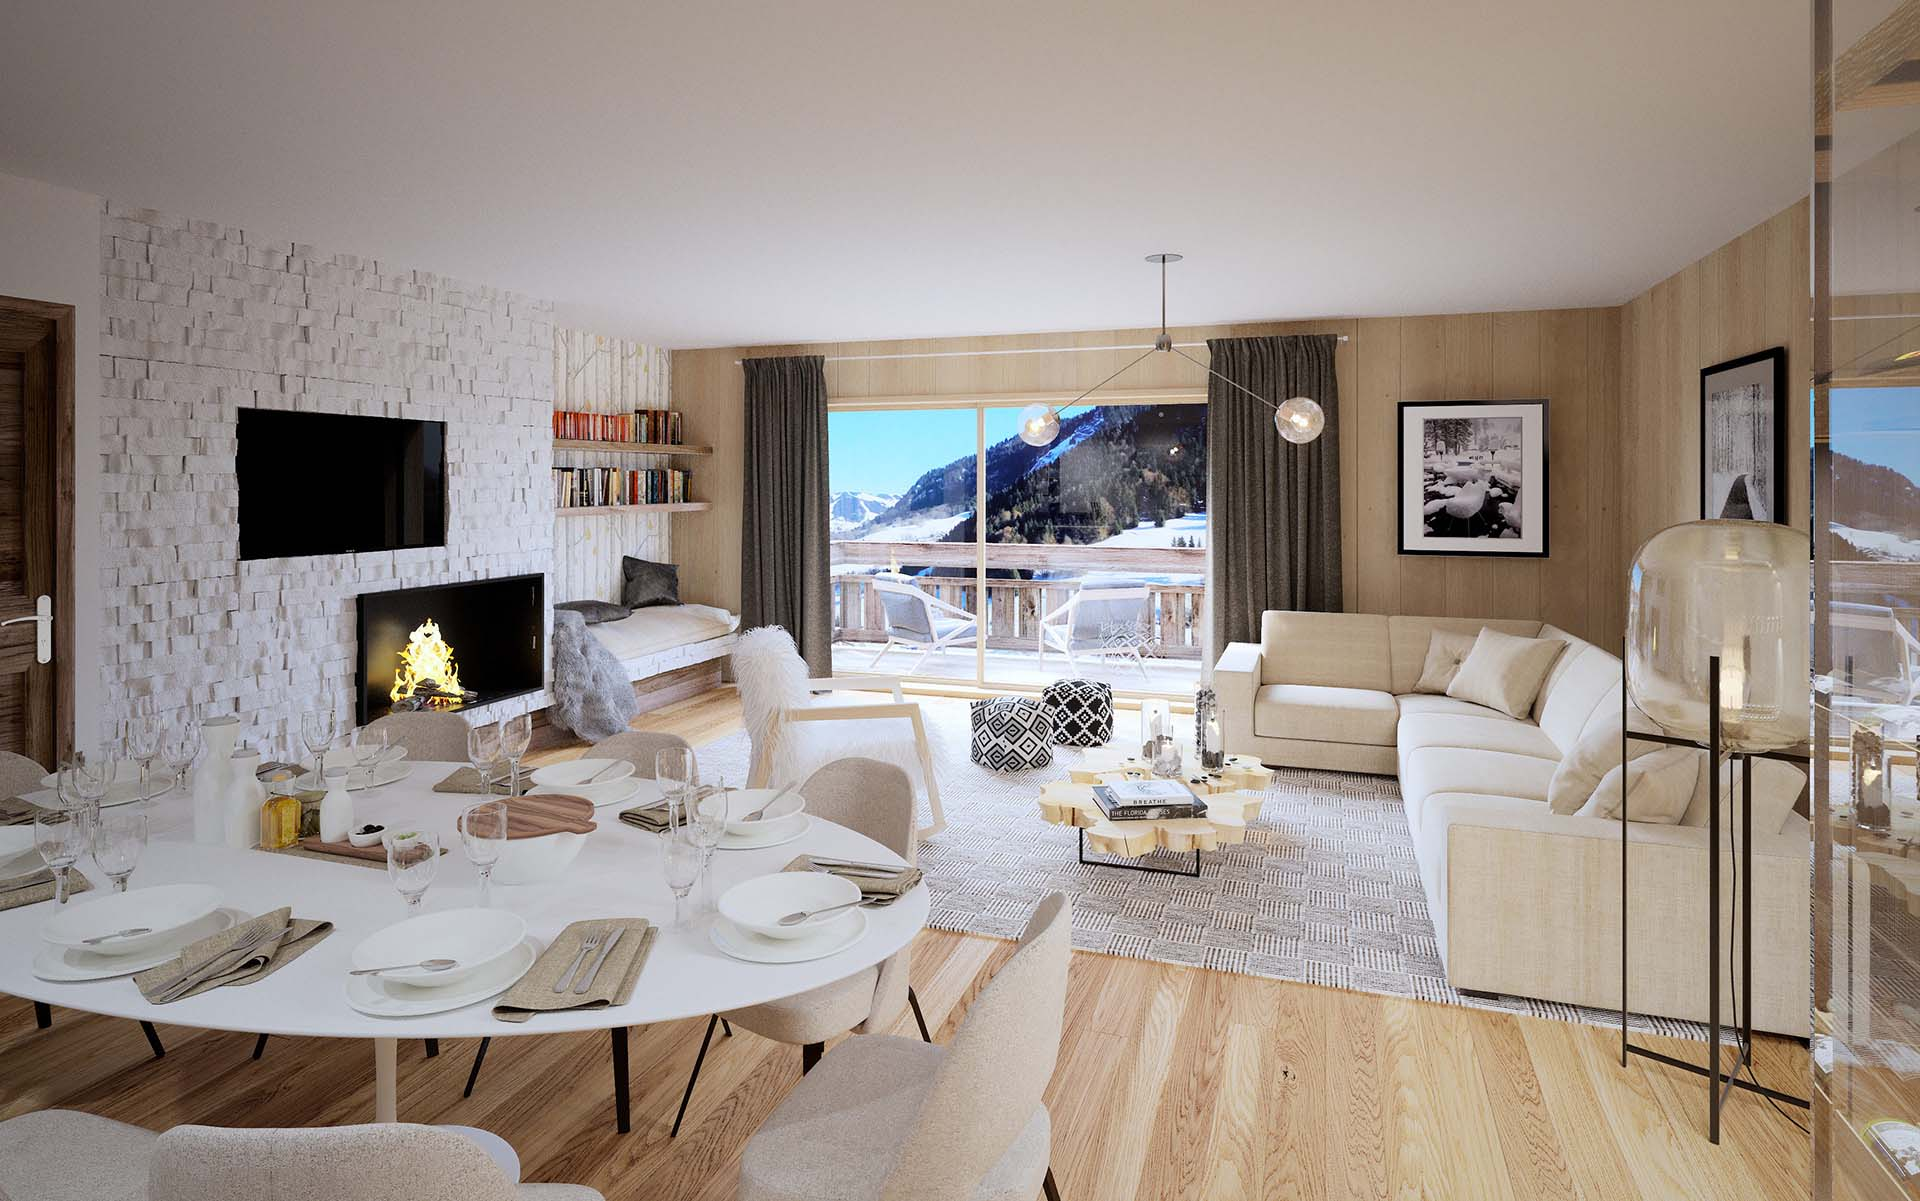 Creation of 3D promotional images of a luxurious apartment for marketing.